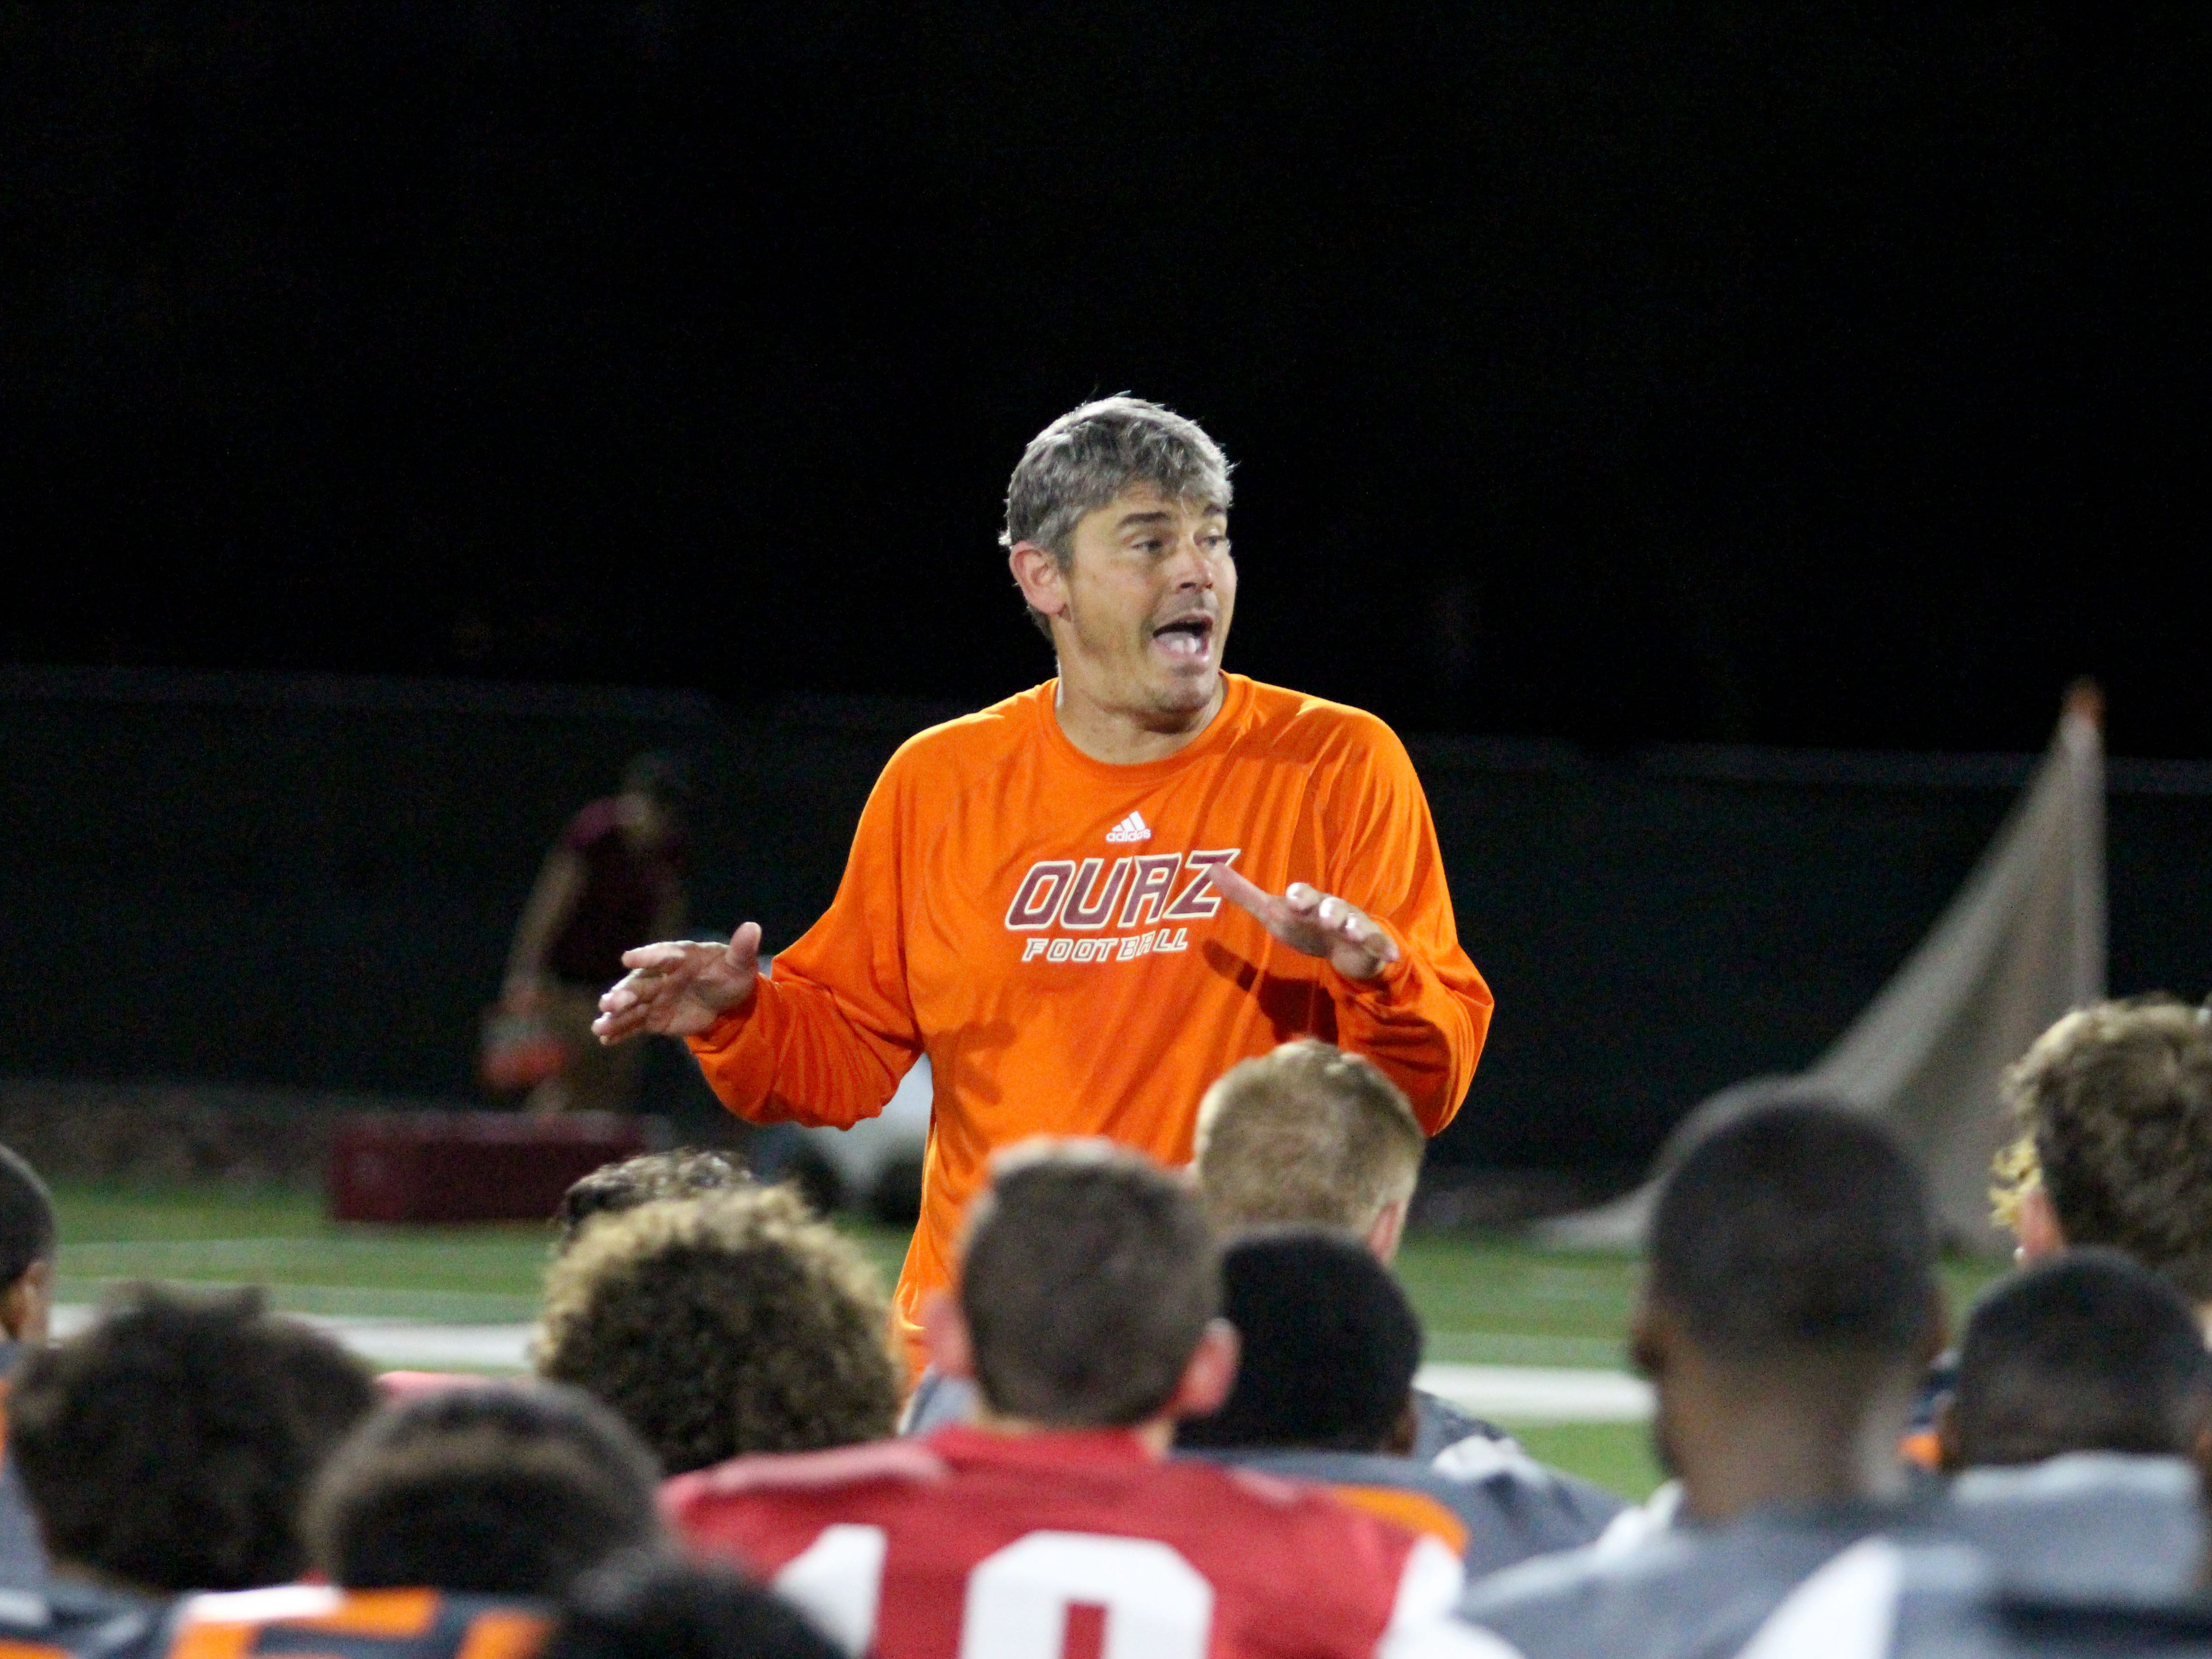 OUAZ coach Mike Nesbitt talks to his team after practice on Tuesday night in Surprise on Sept. 11, 2018.